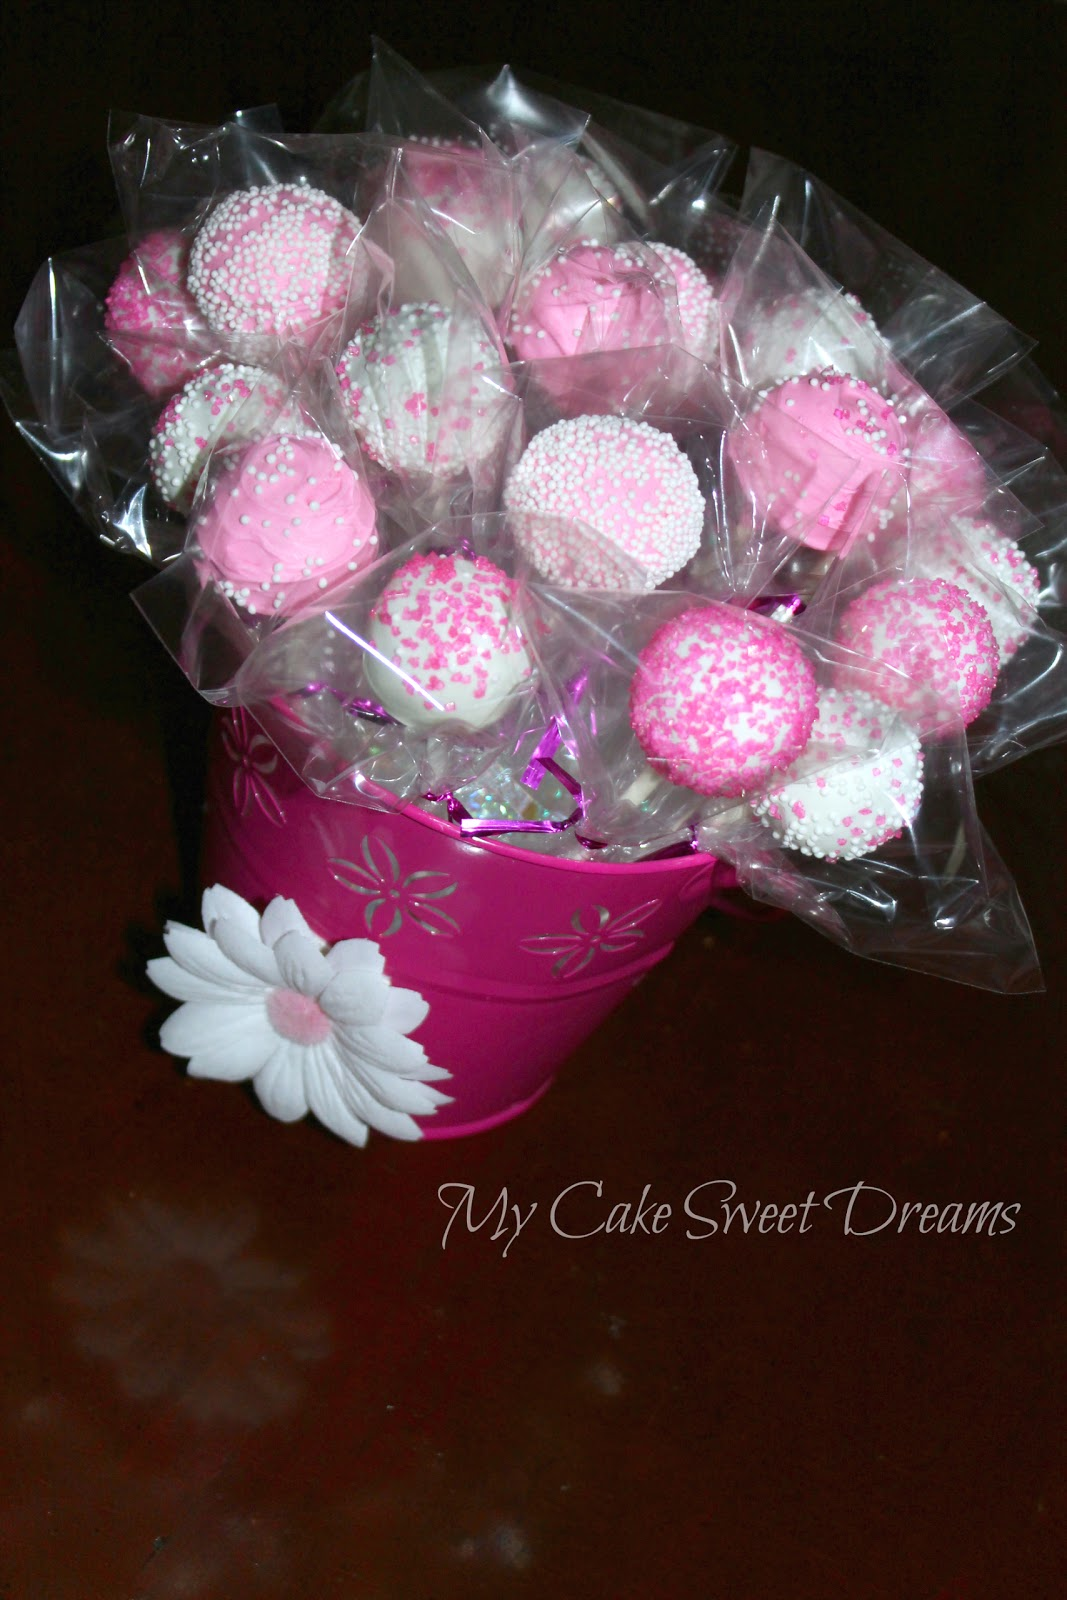 Halloween kitchen decorating ideas - My Cake Sweet Dreams Quot Birthday Pink Cake Pops